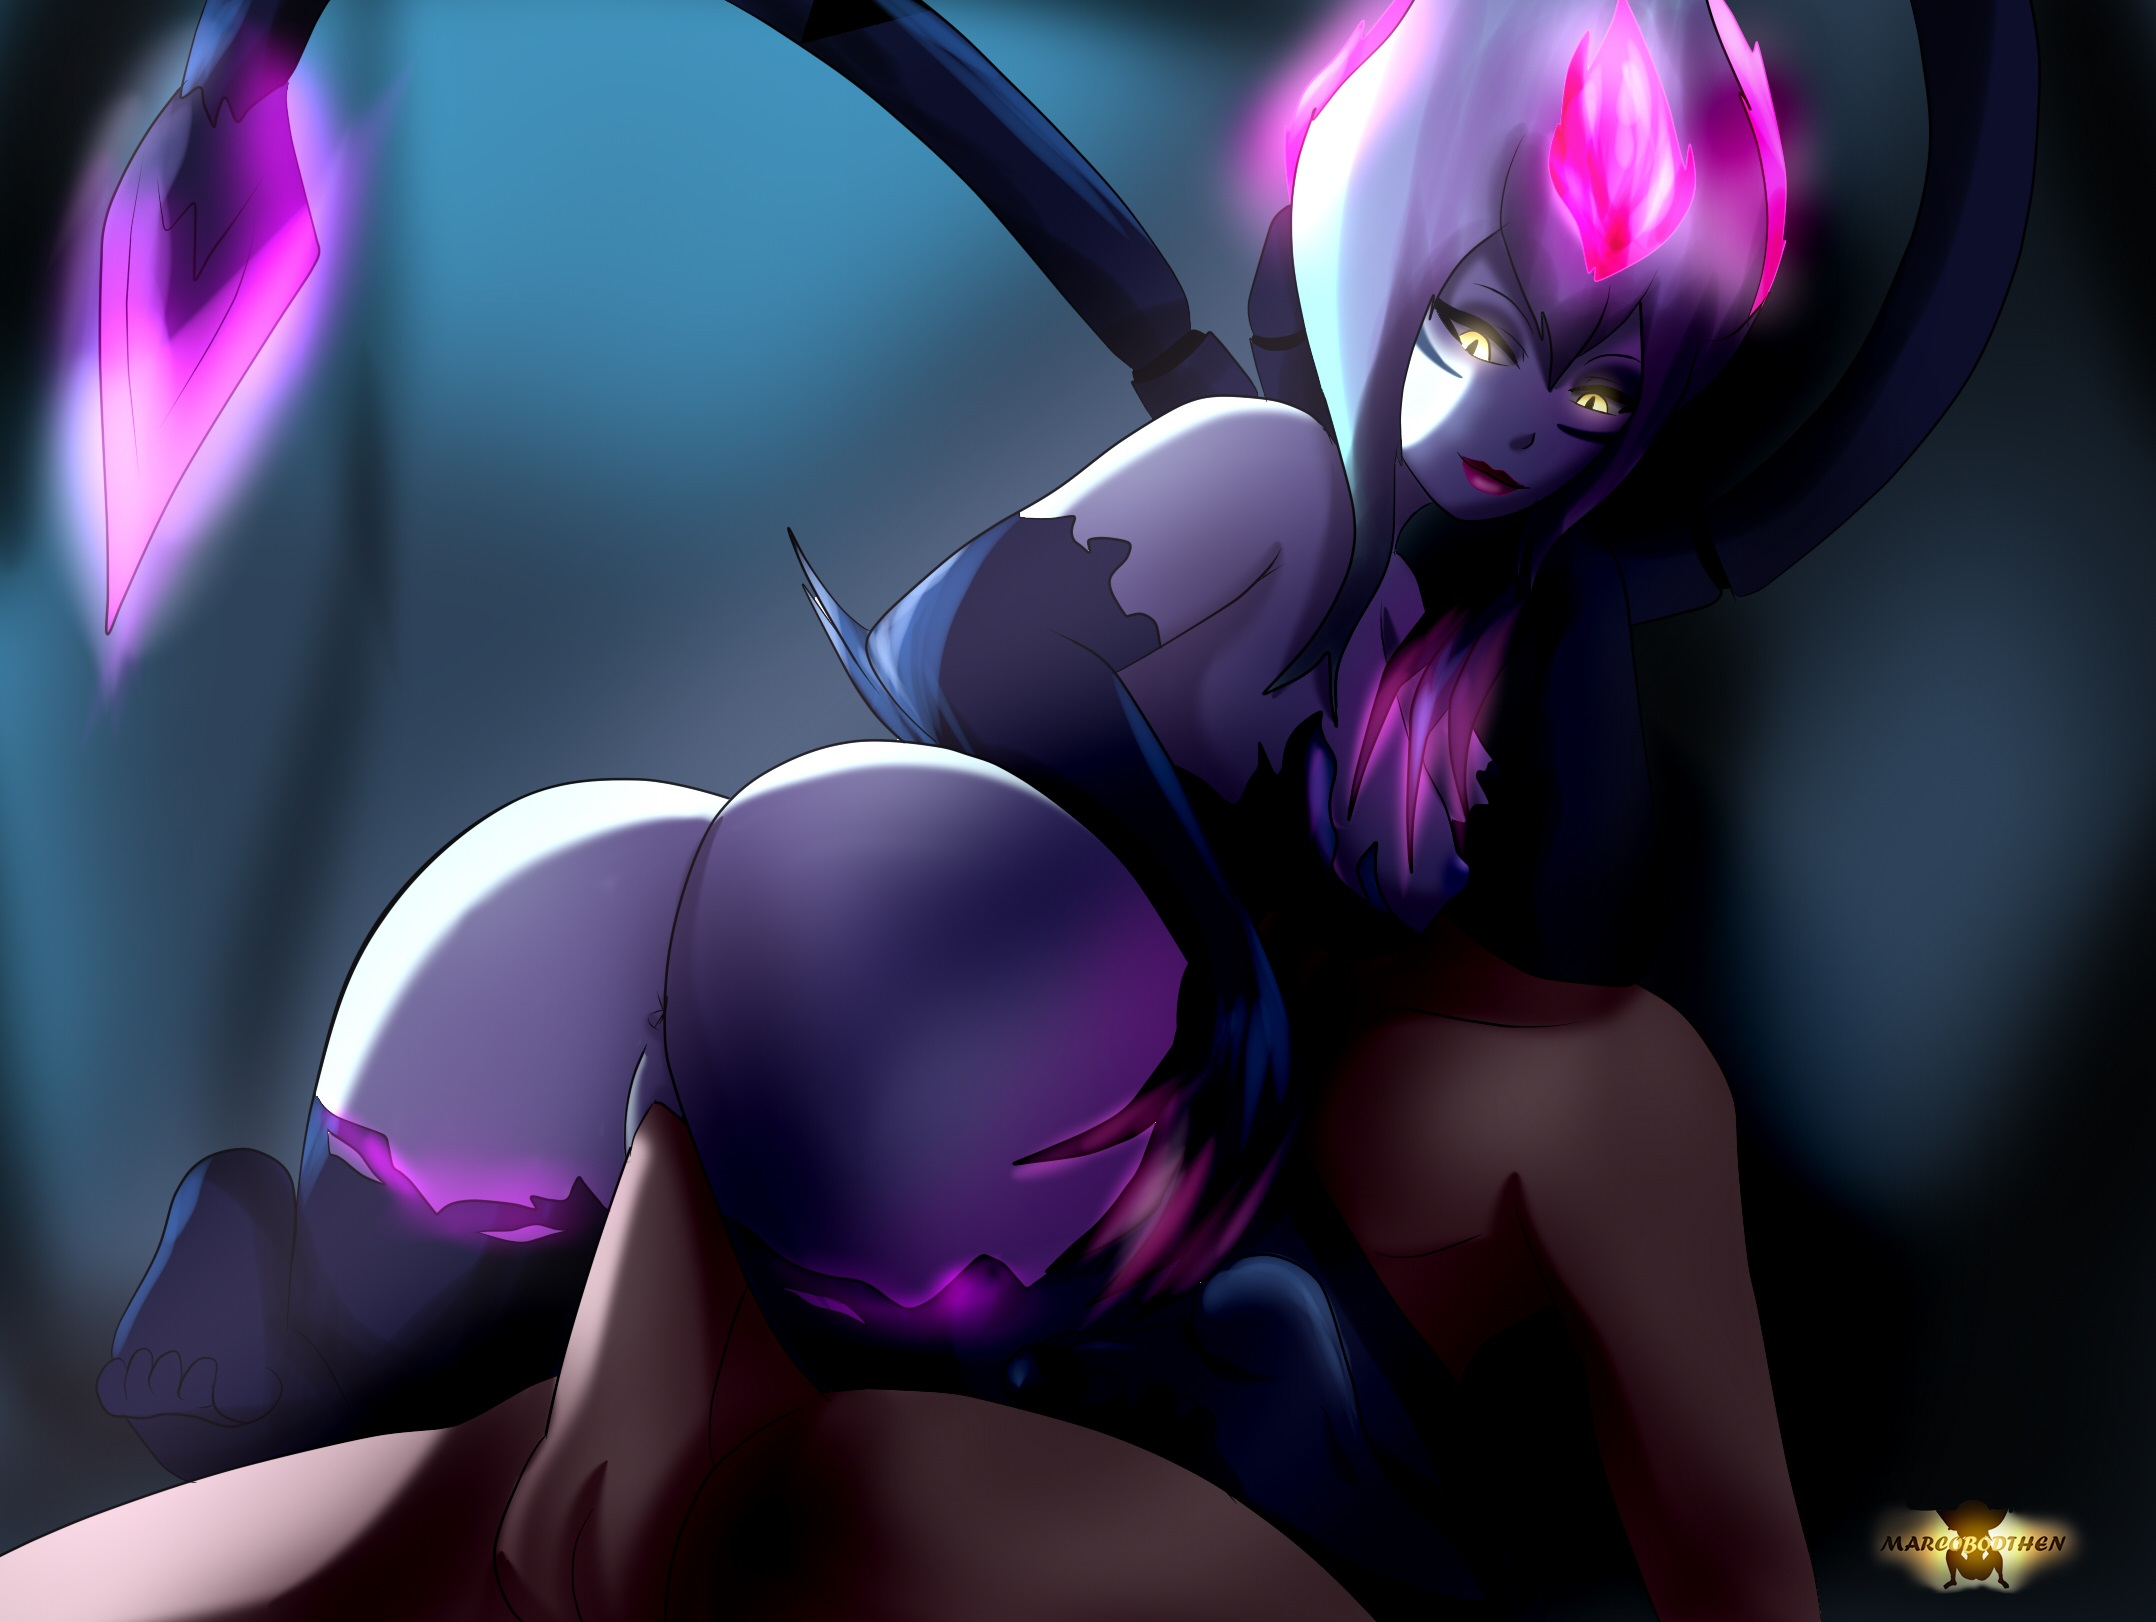 2329839 - Evelynn League_of_Legends Marcobodt